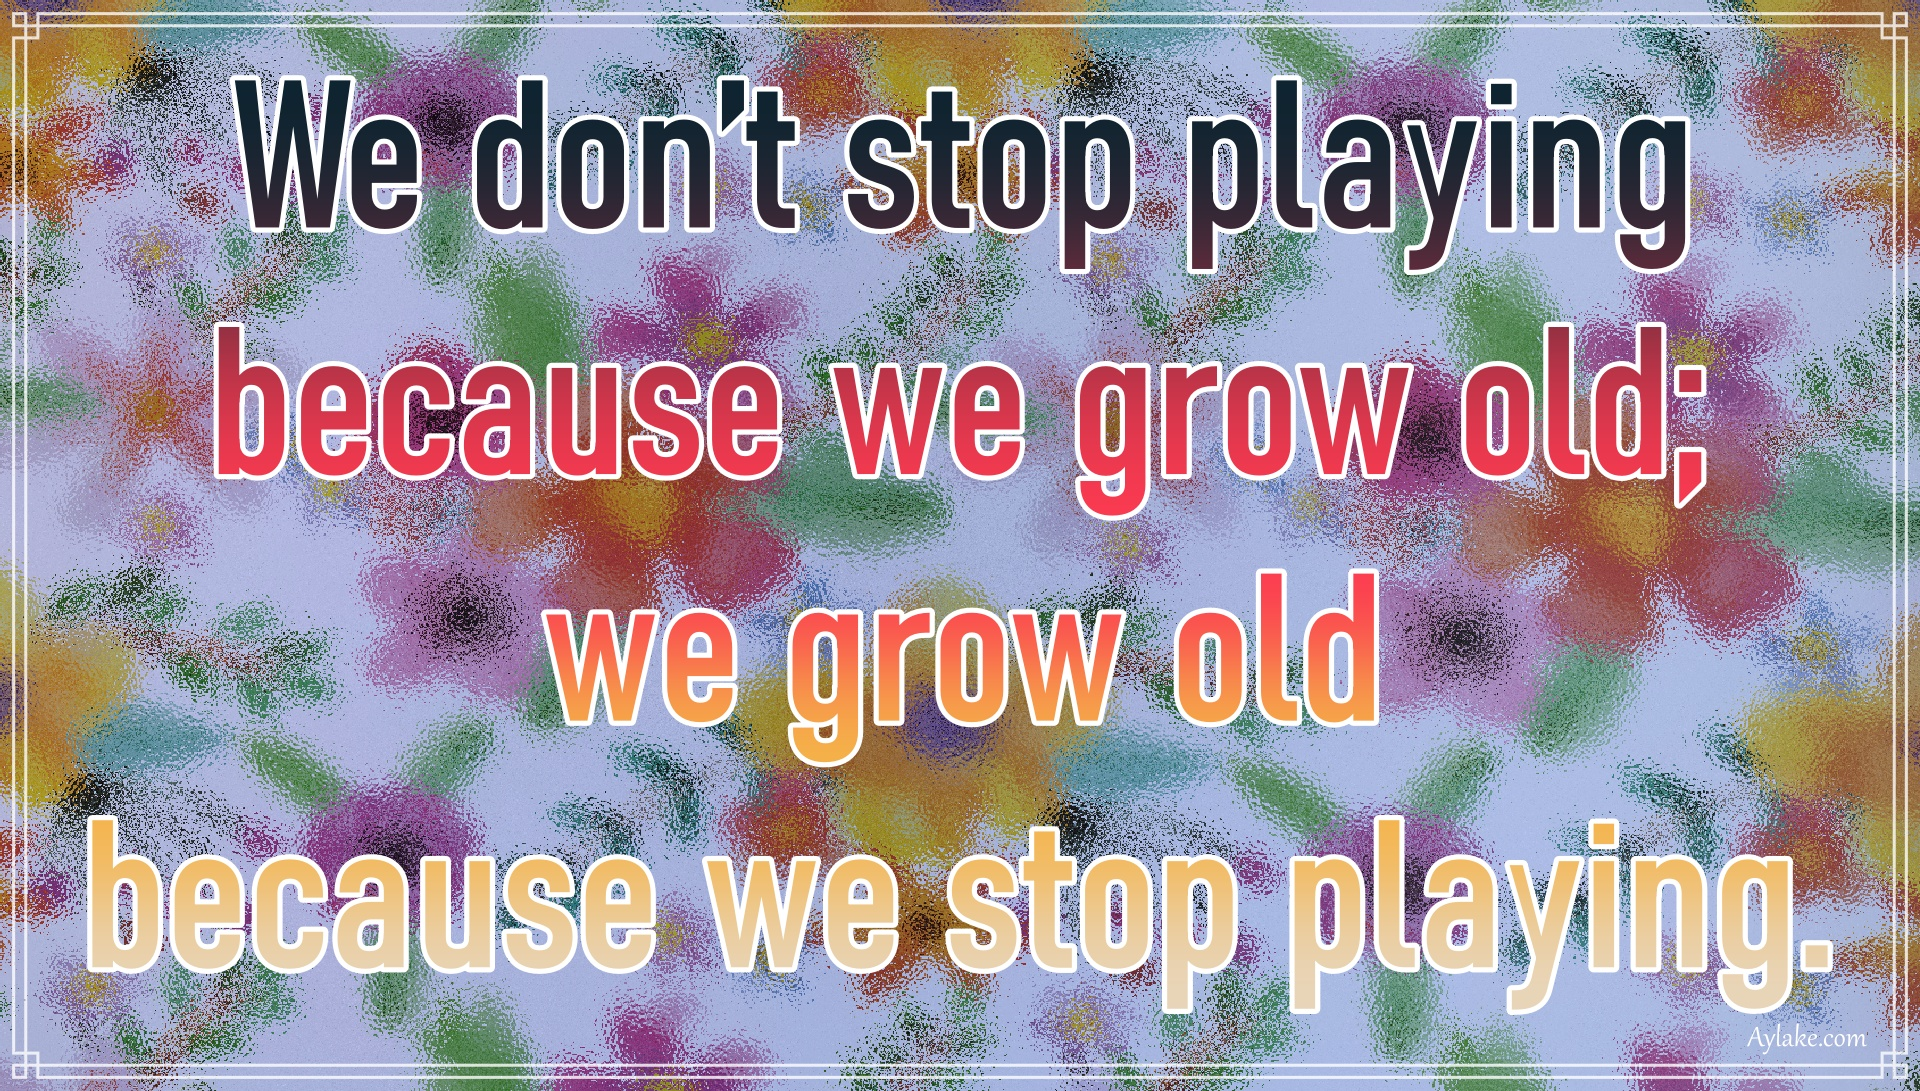 Deep quotes We do not stop playing because we grow old Aylake